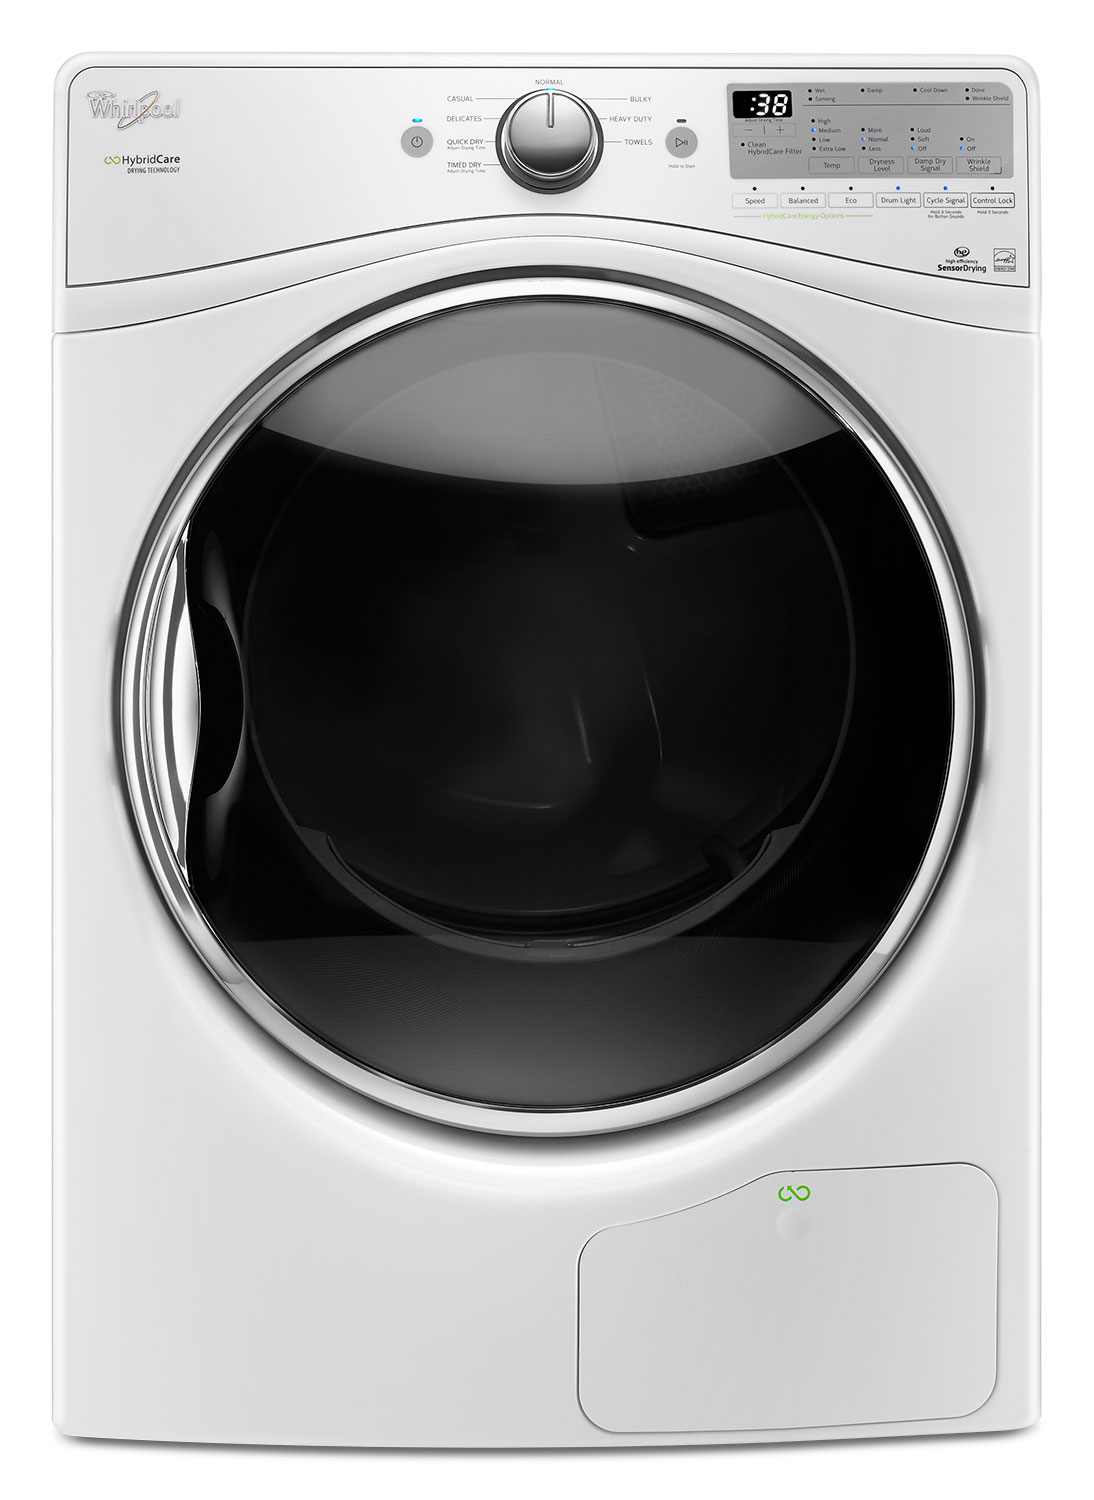 Maytag 7.4 Cu. Ft. Ventless Electric Dryer – YWED9290FW